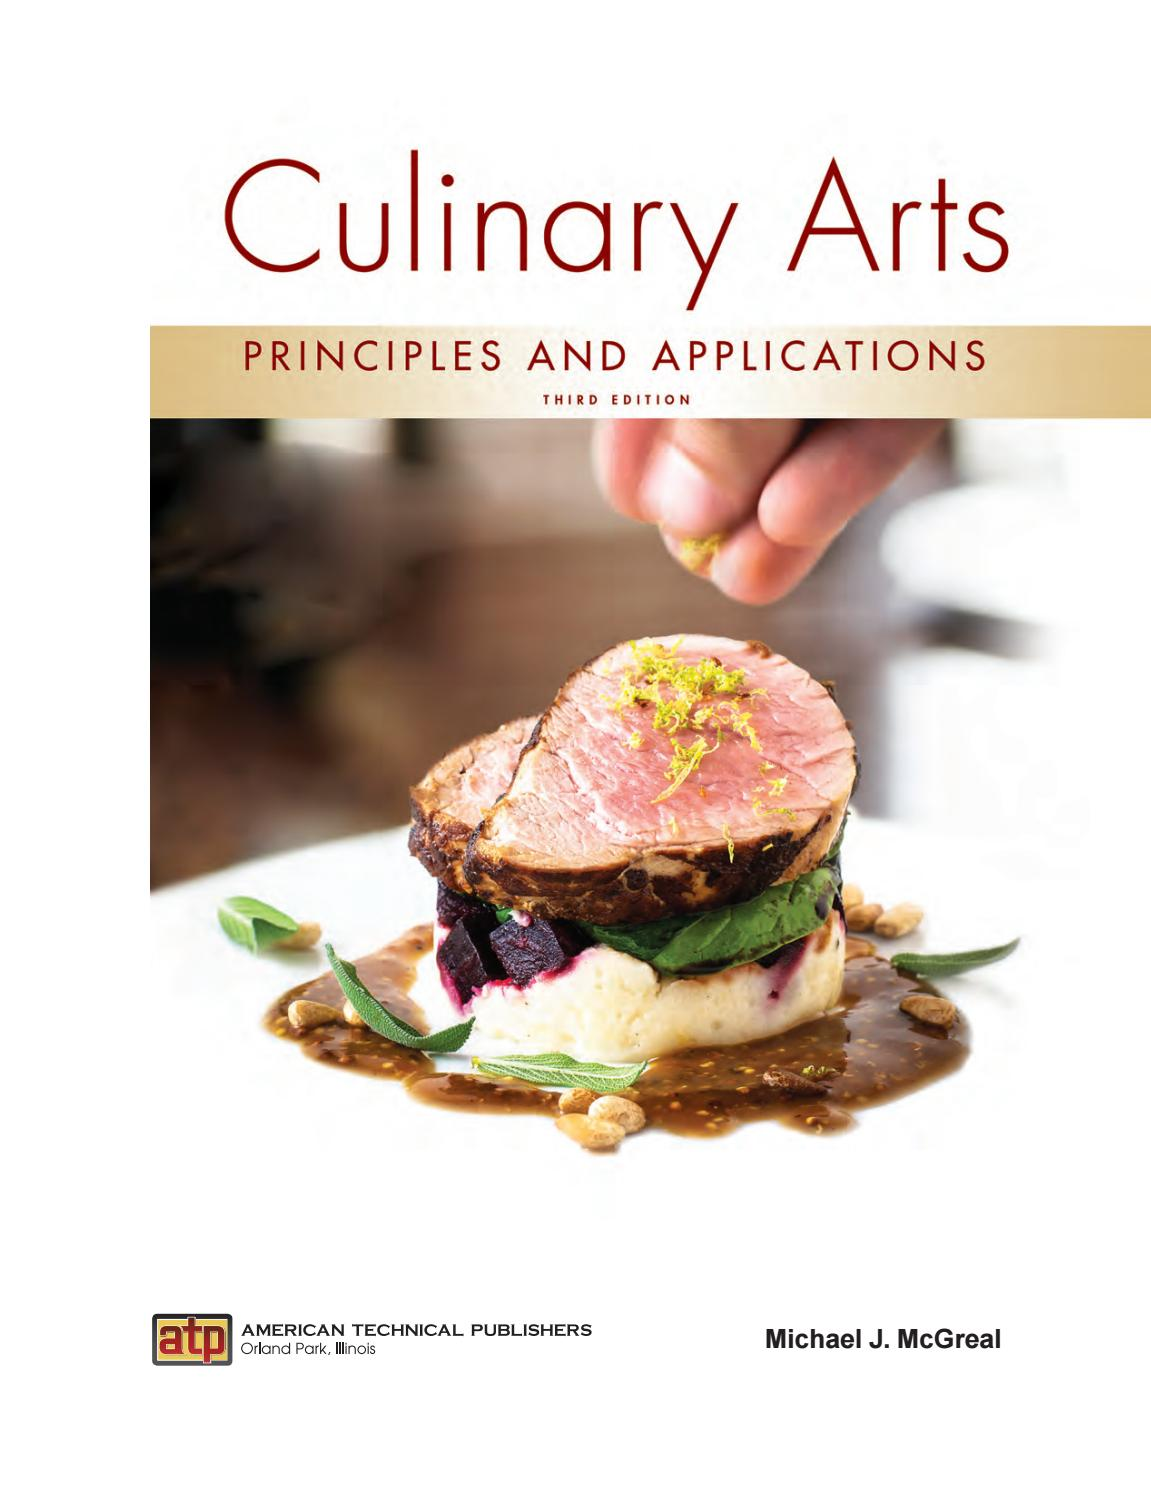 Culinary Arts Principles And Applications 3rd Edition By American Technical Publishers Issuu